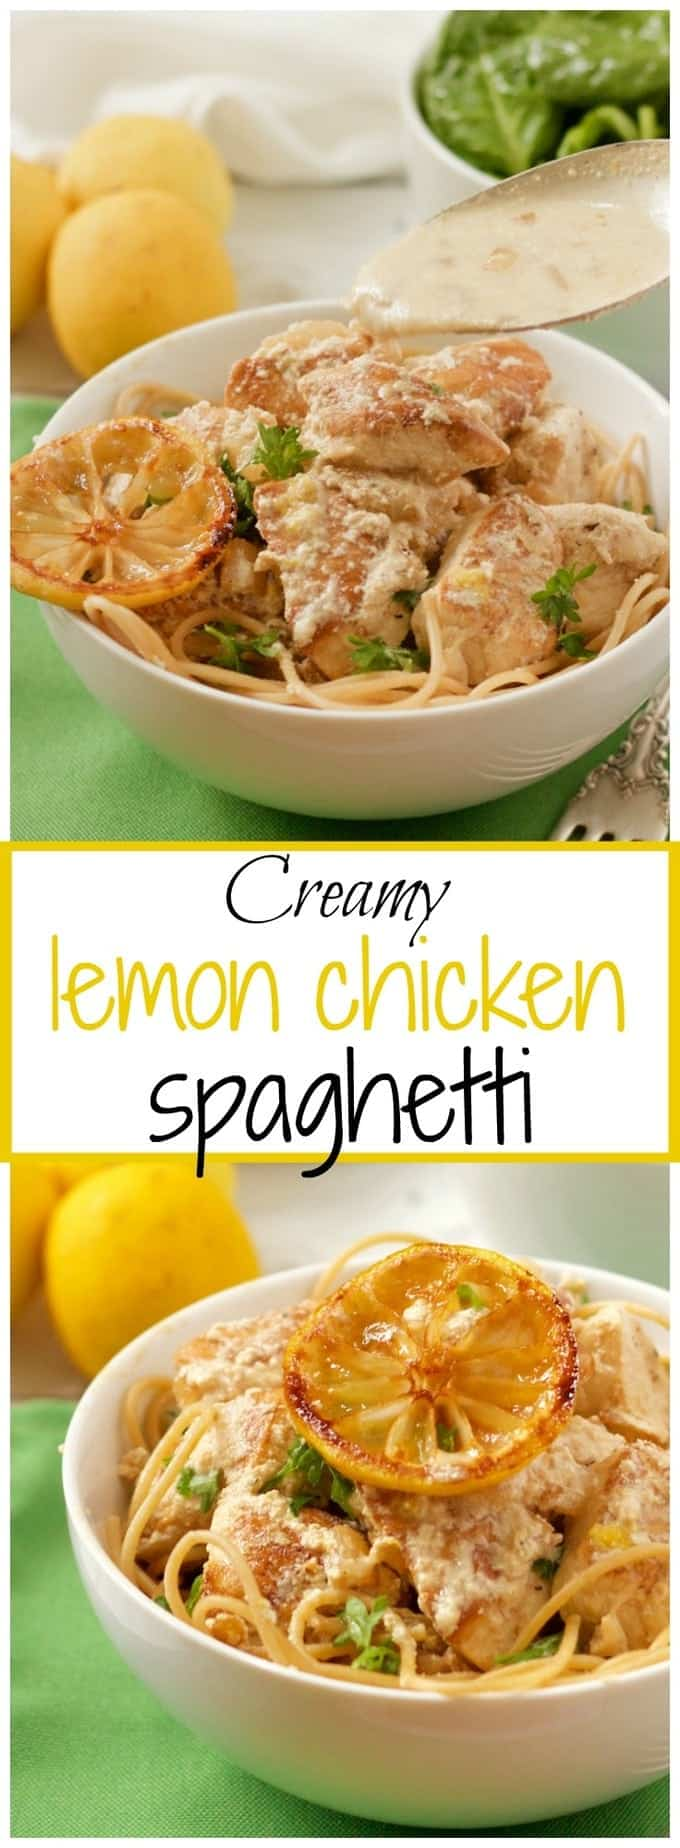 Chicken breasts are cooked in a light, bright lemon and goat cheese sauce and served over spaghetti for a fast, flavorful dinner!